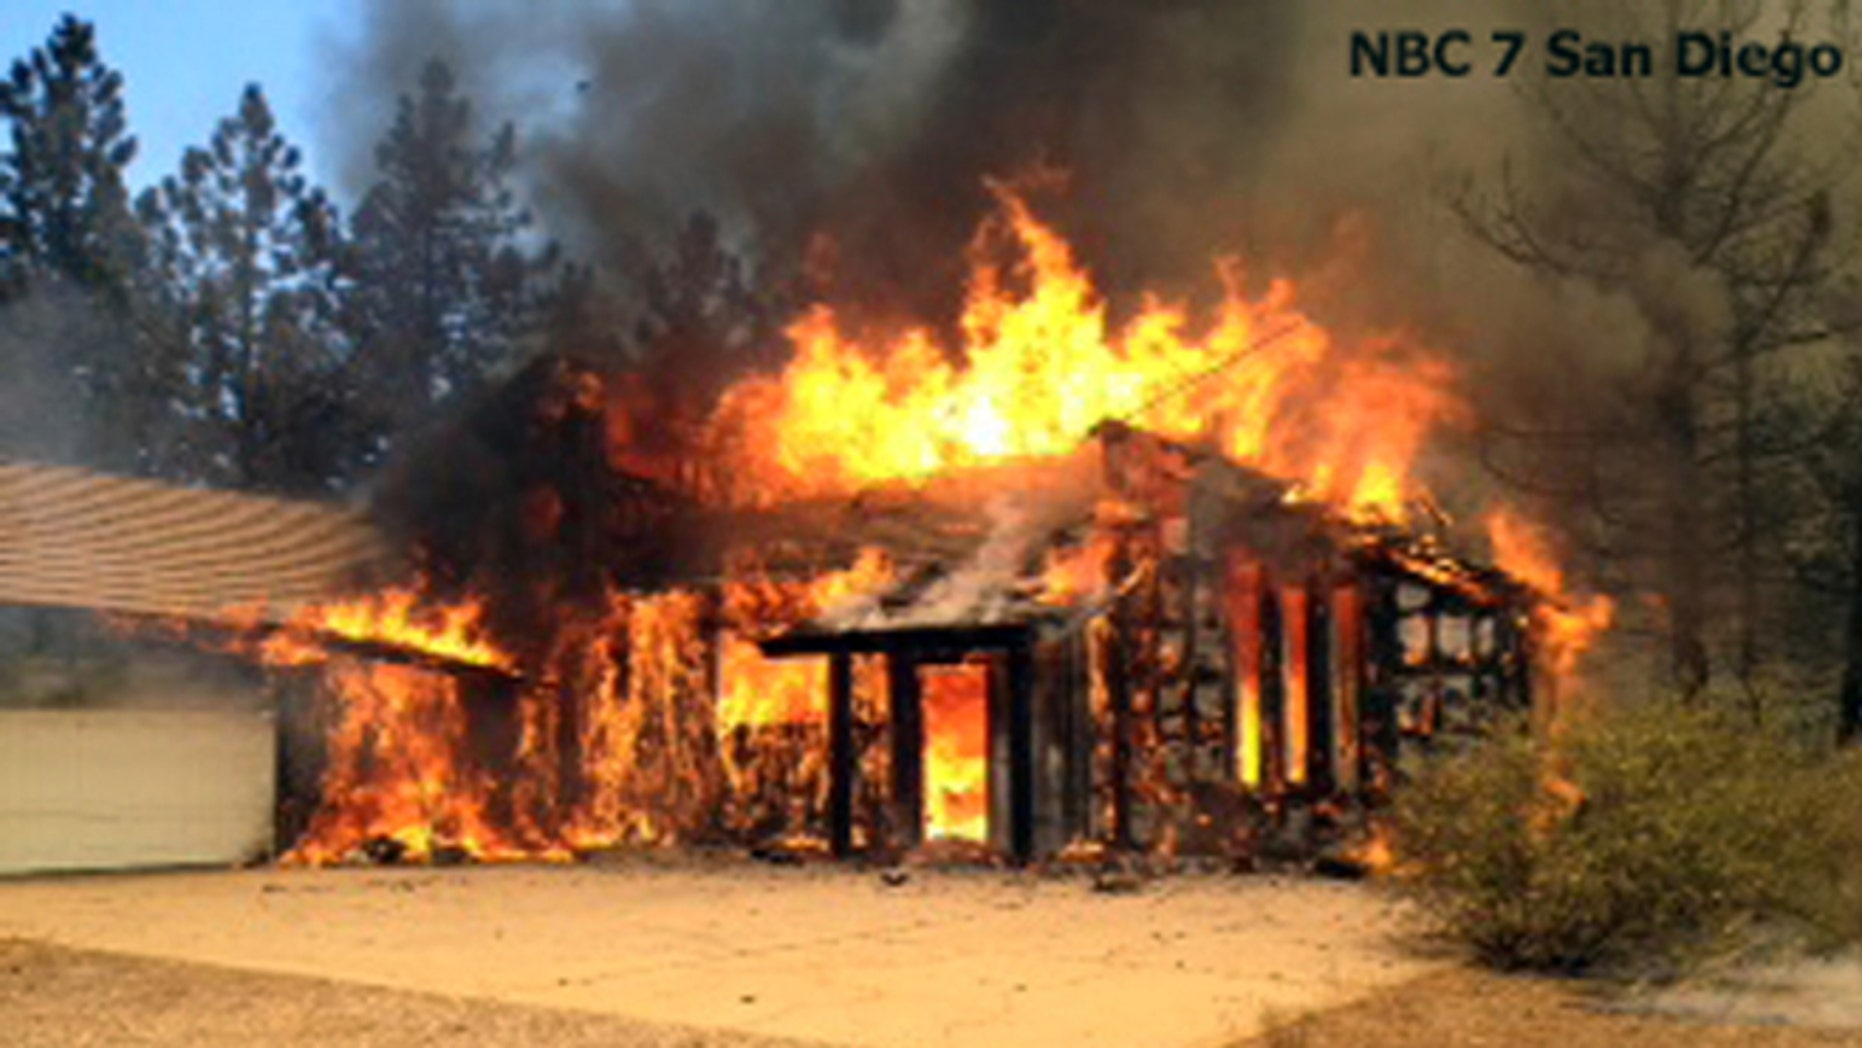 July 3, 2014: In this still frame from video provided by KNSD-TV, a home is fully involved in flames as crews scrambled to corral a wildfire that burned two homes near the San Diego County mountain town of Julian in Southern California. (AP/KNSD-TV)